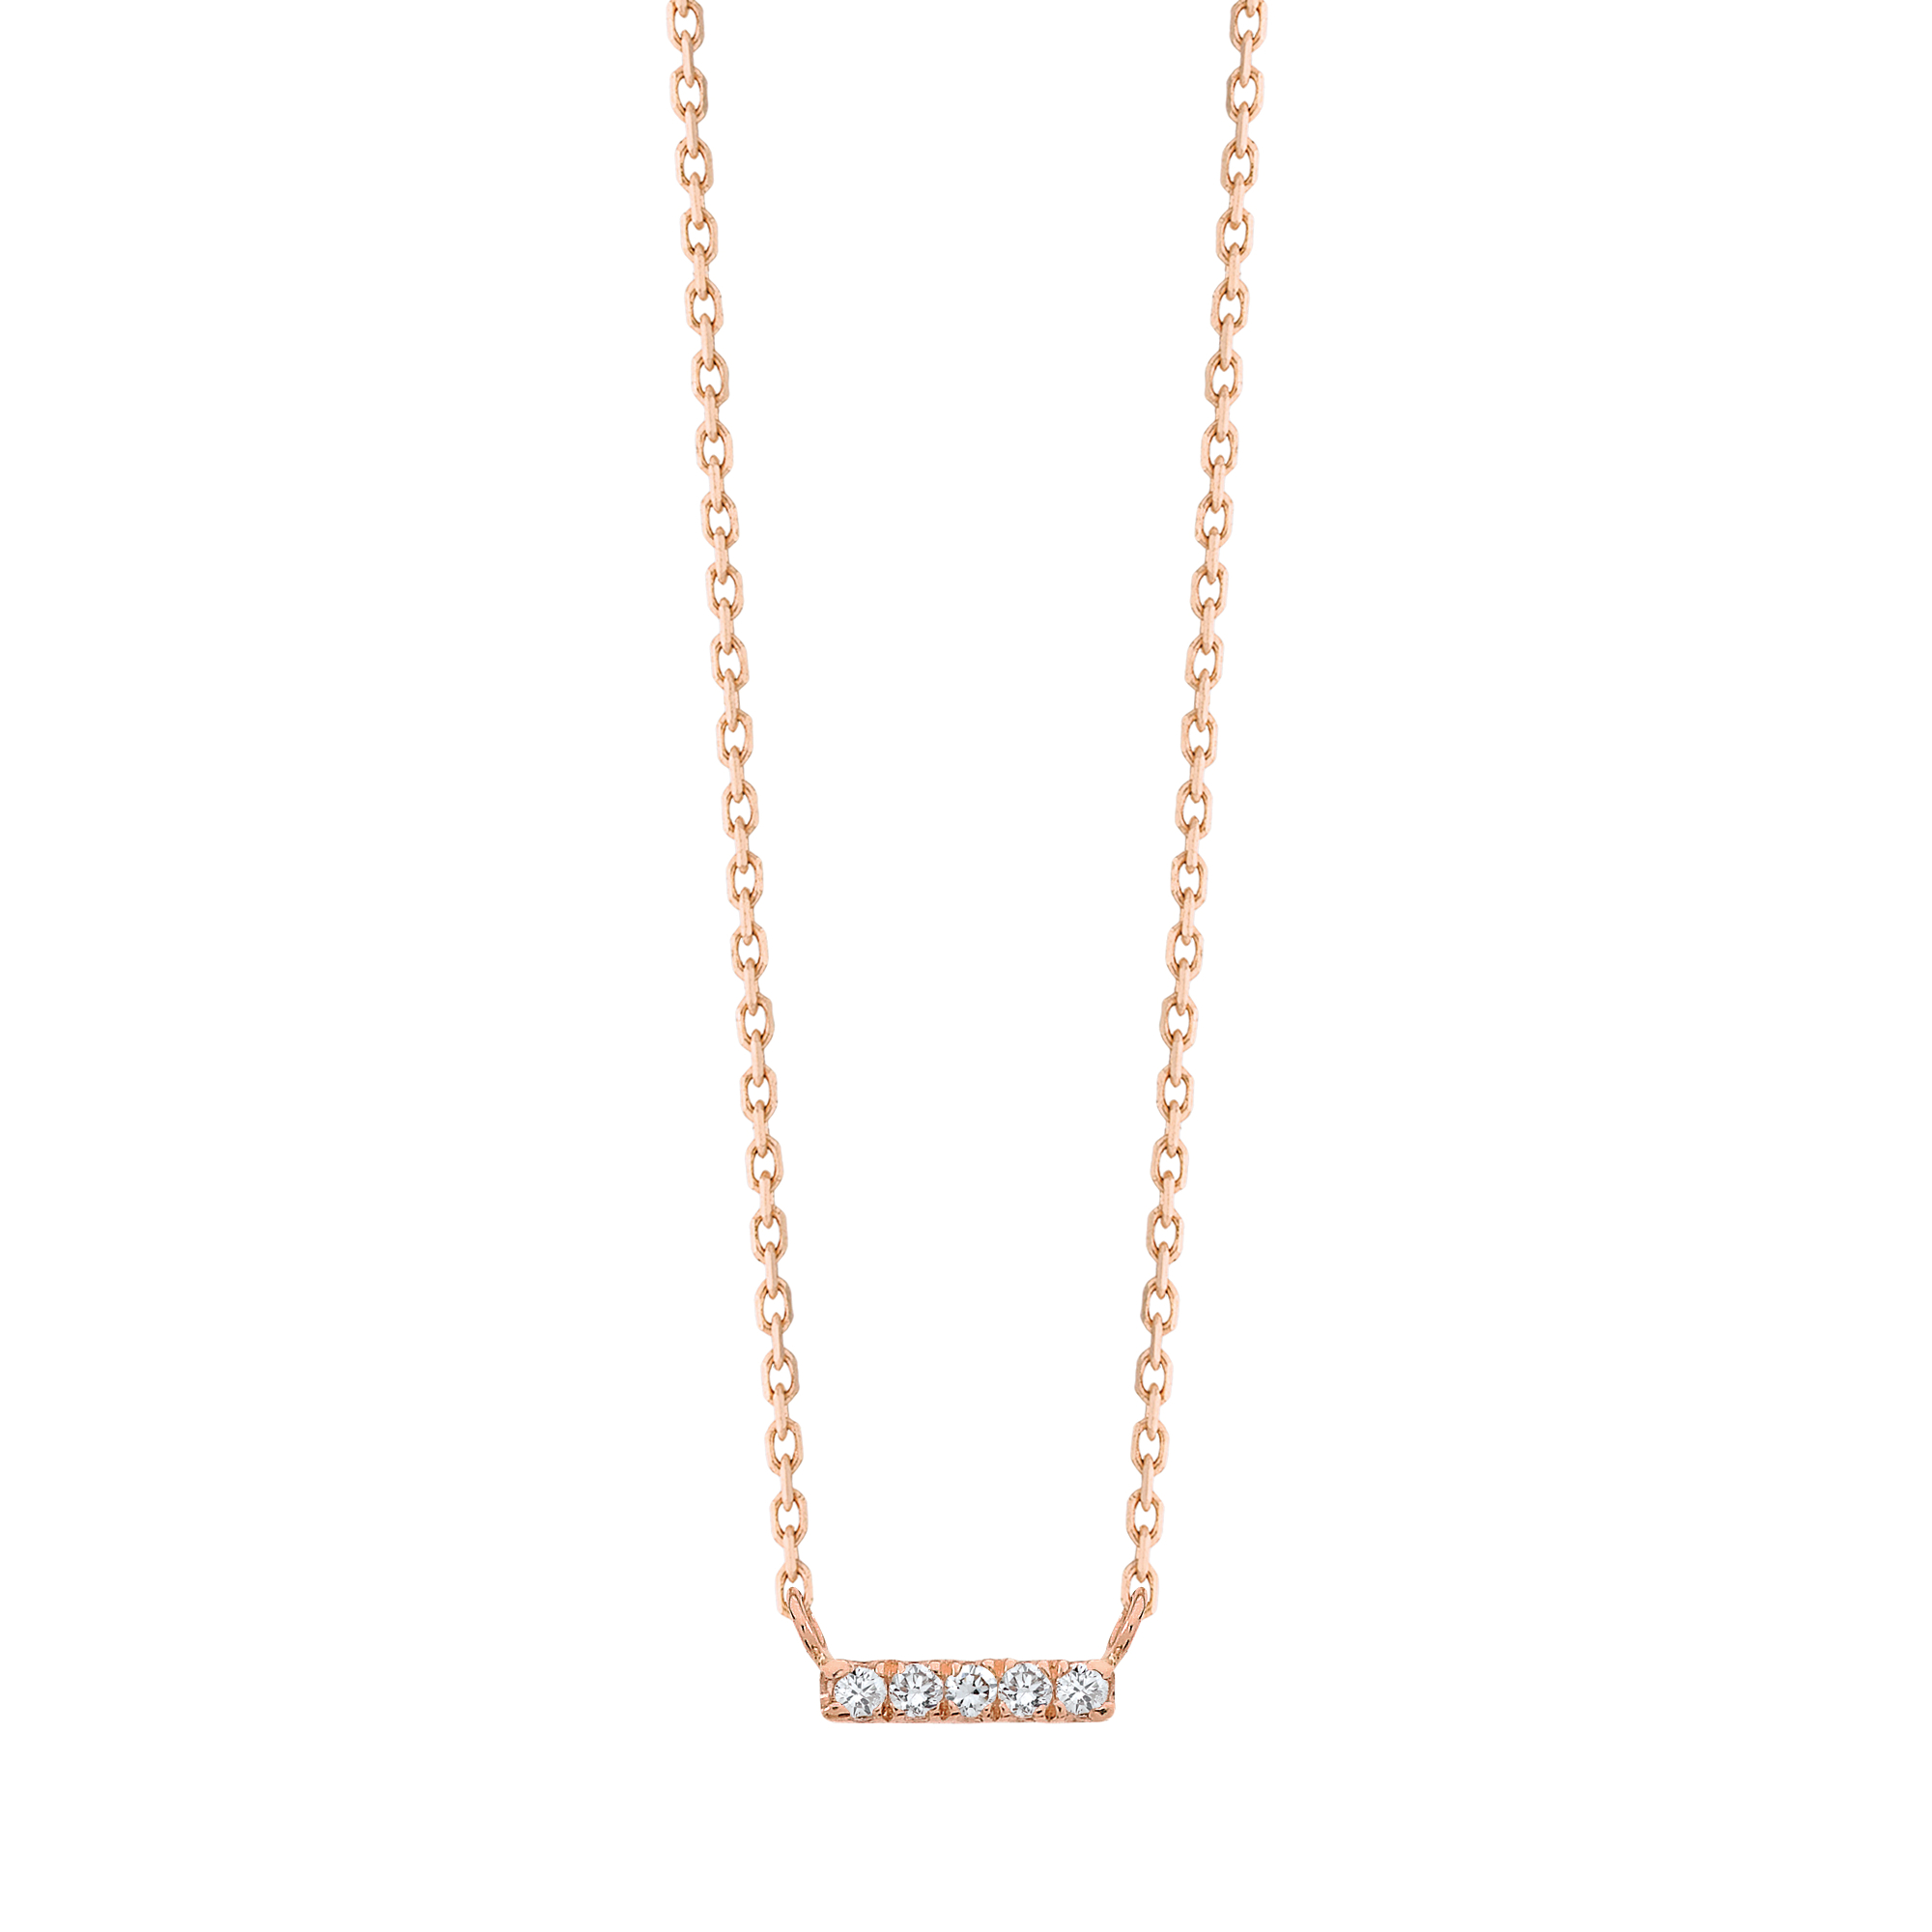 Medellin Pendant Necklace in gold and diamonds Vanrycke KghQx